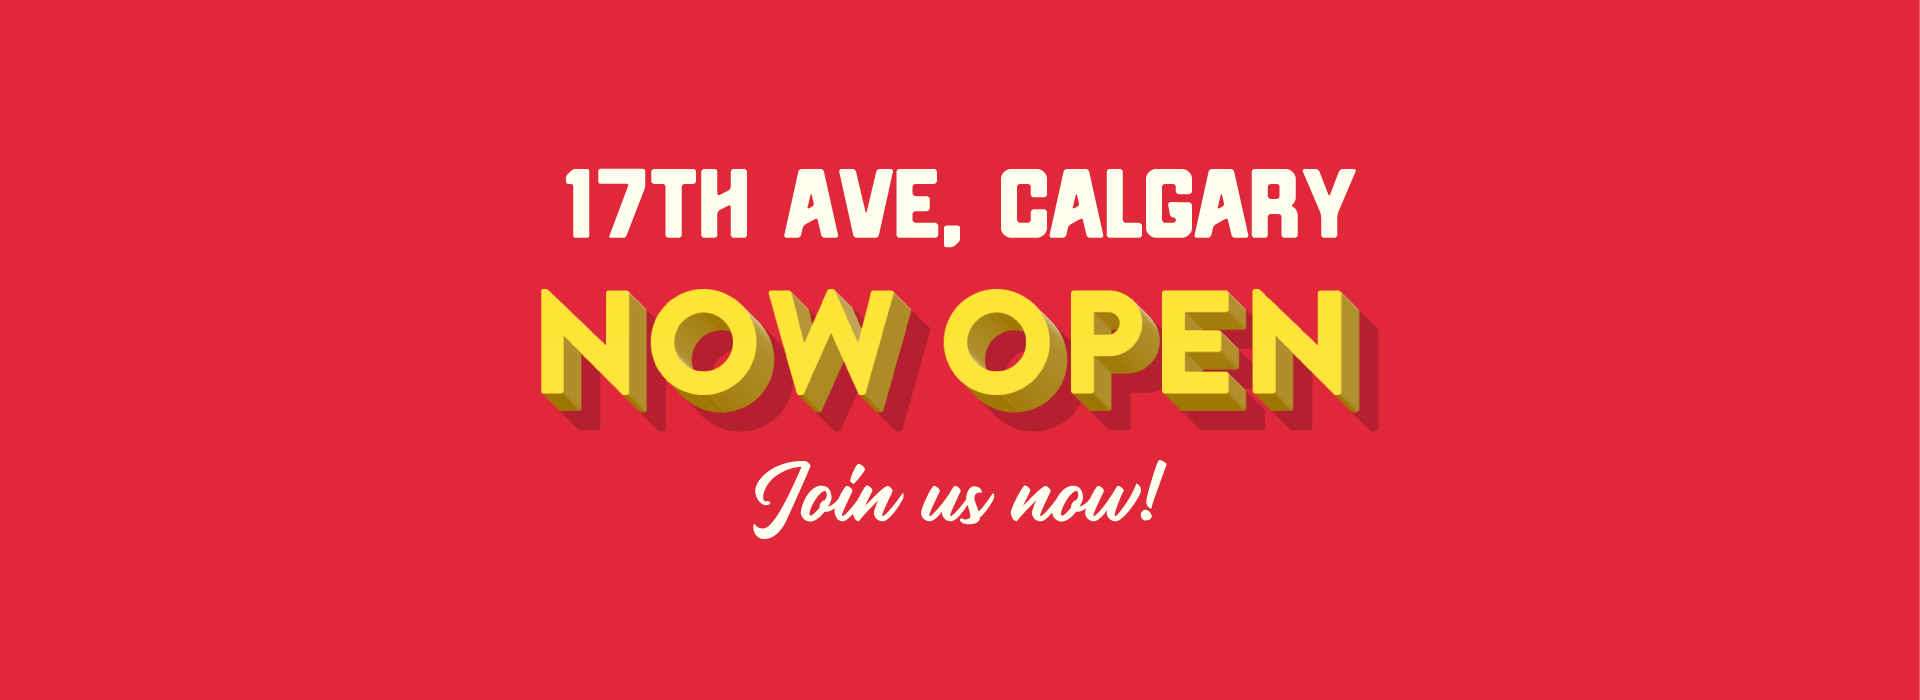 17th Ave Now Open